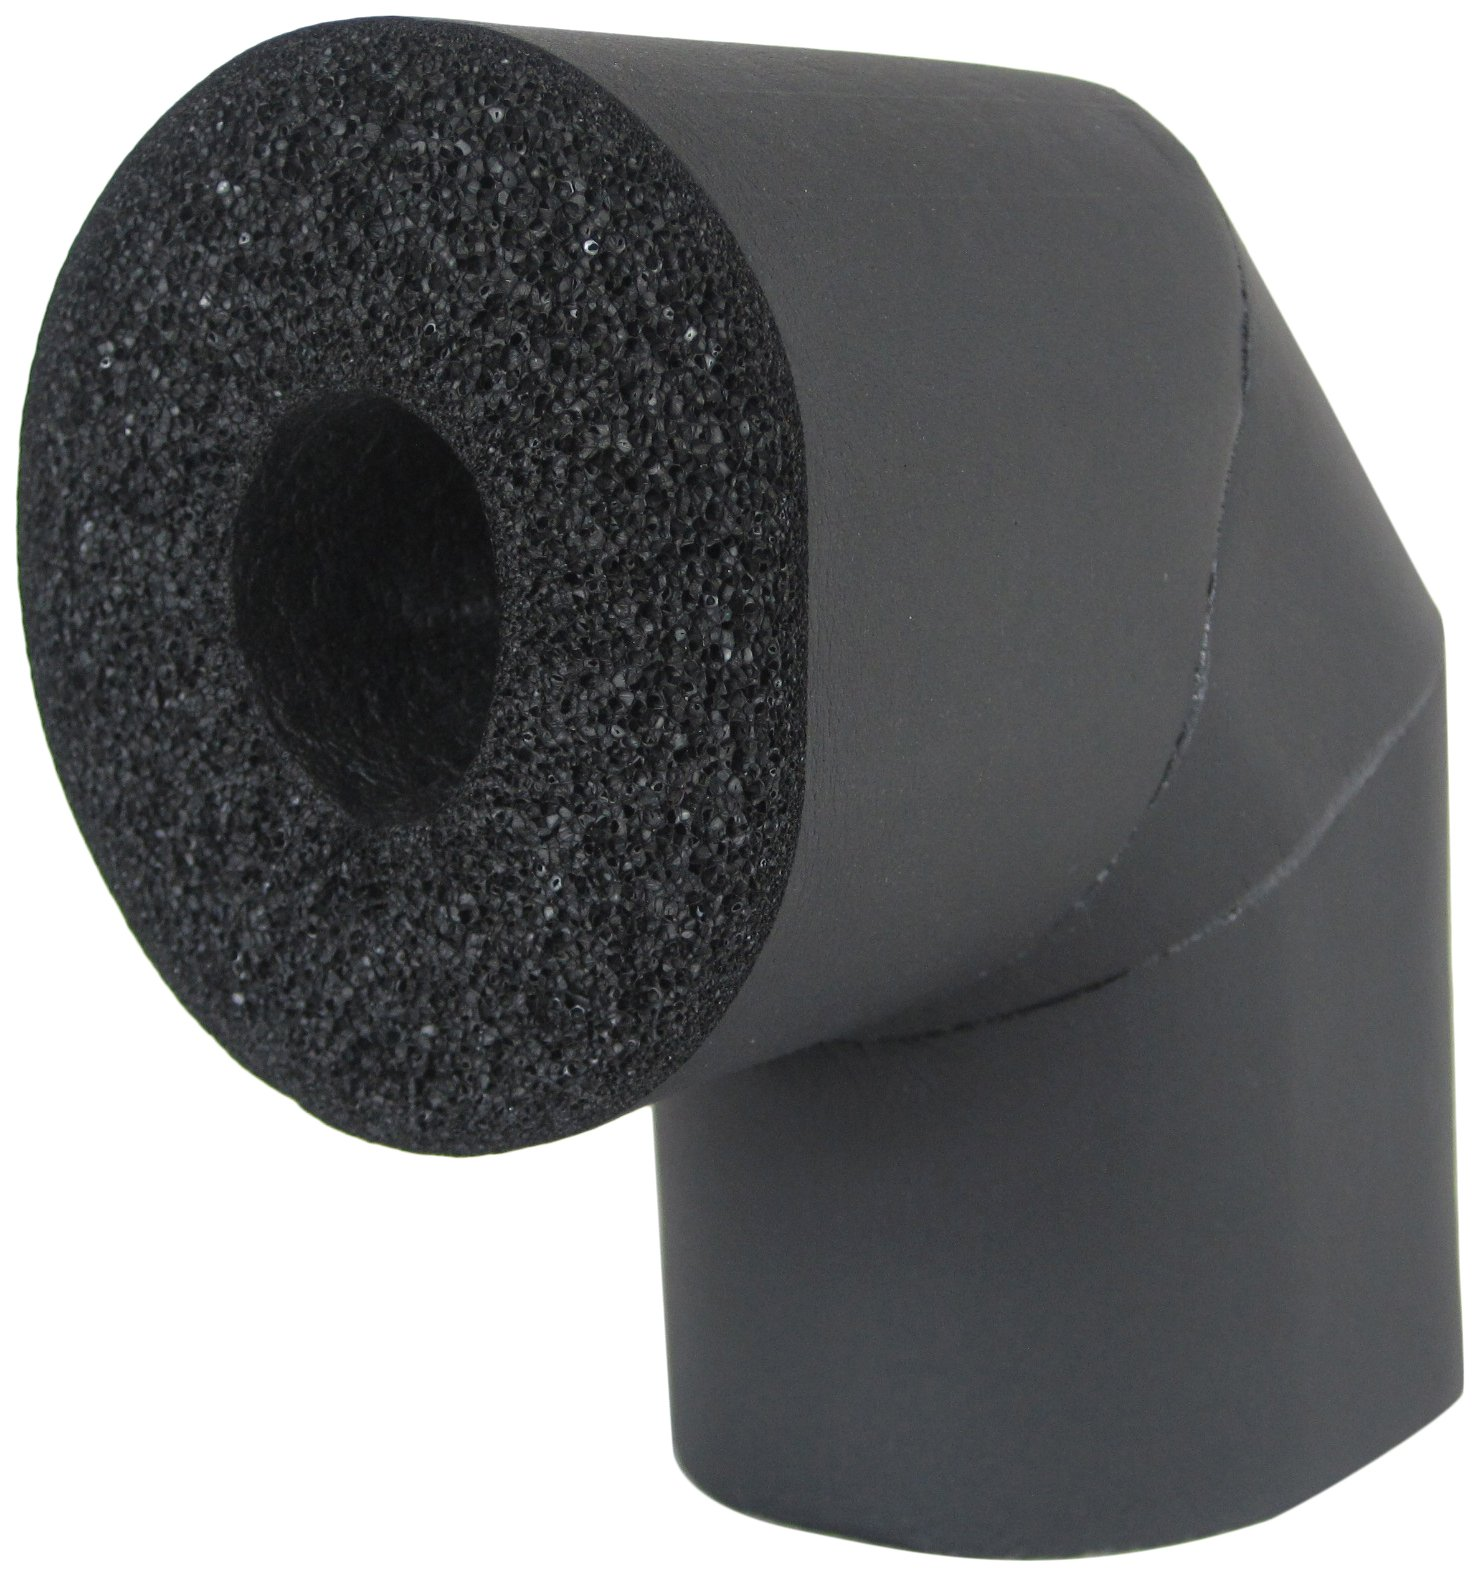 K-Flex 801-LRE-100258 Closed Cell Elastomeric Insulation, 90 degree Elbow, 2-5/8'' Nominal Insulation ID, 1'' Wall Thickness, Black (Pack of 11)